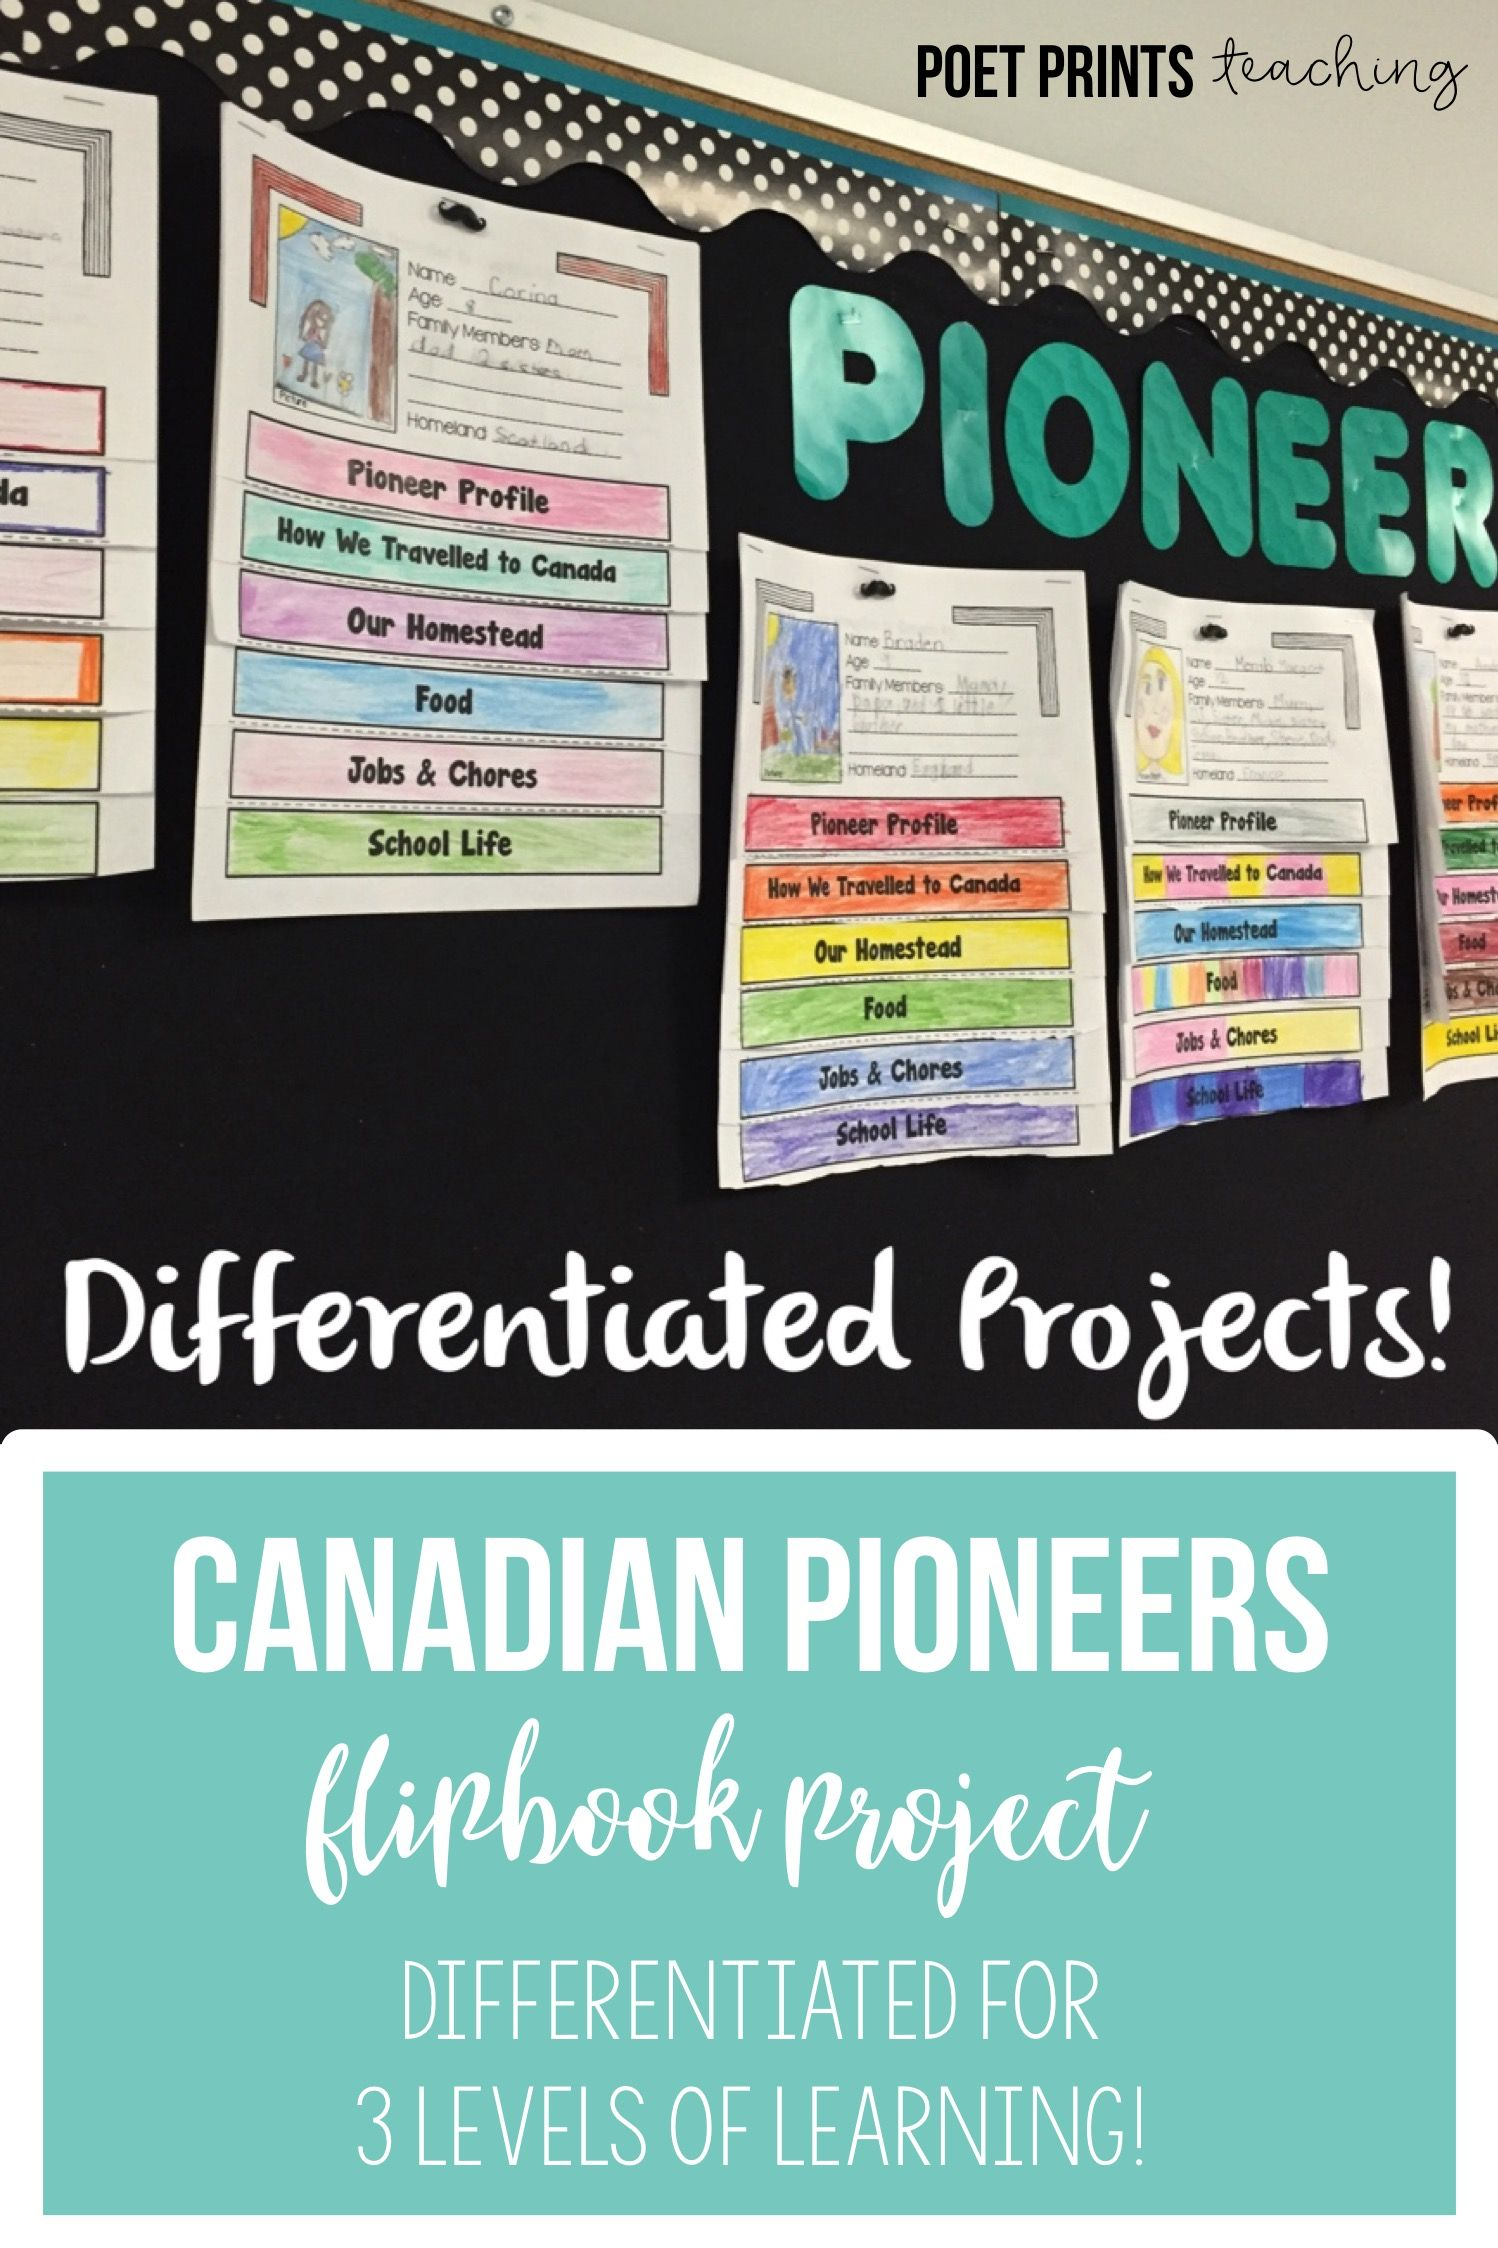 We Had Fun Pretending To Be Pioneers With This Flipbook Project I